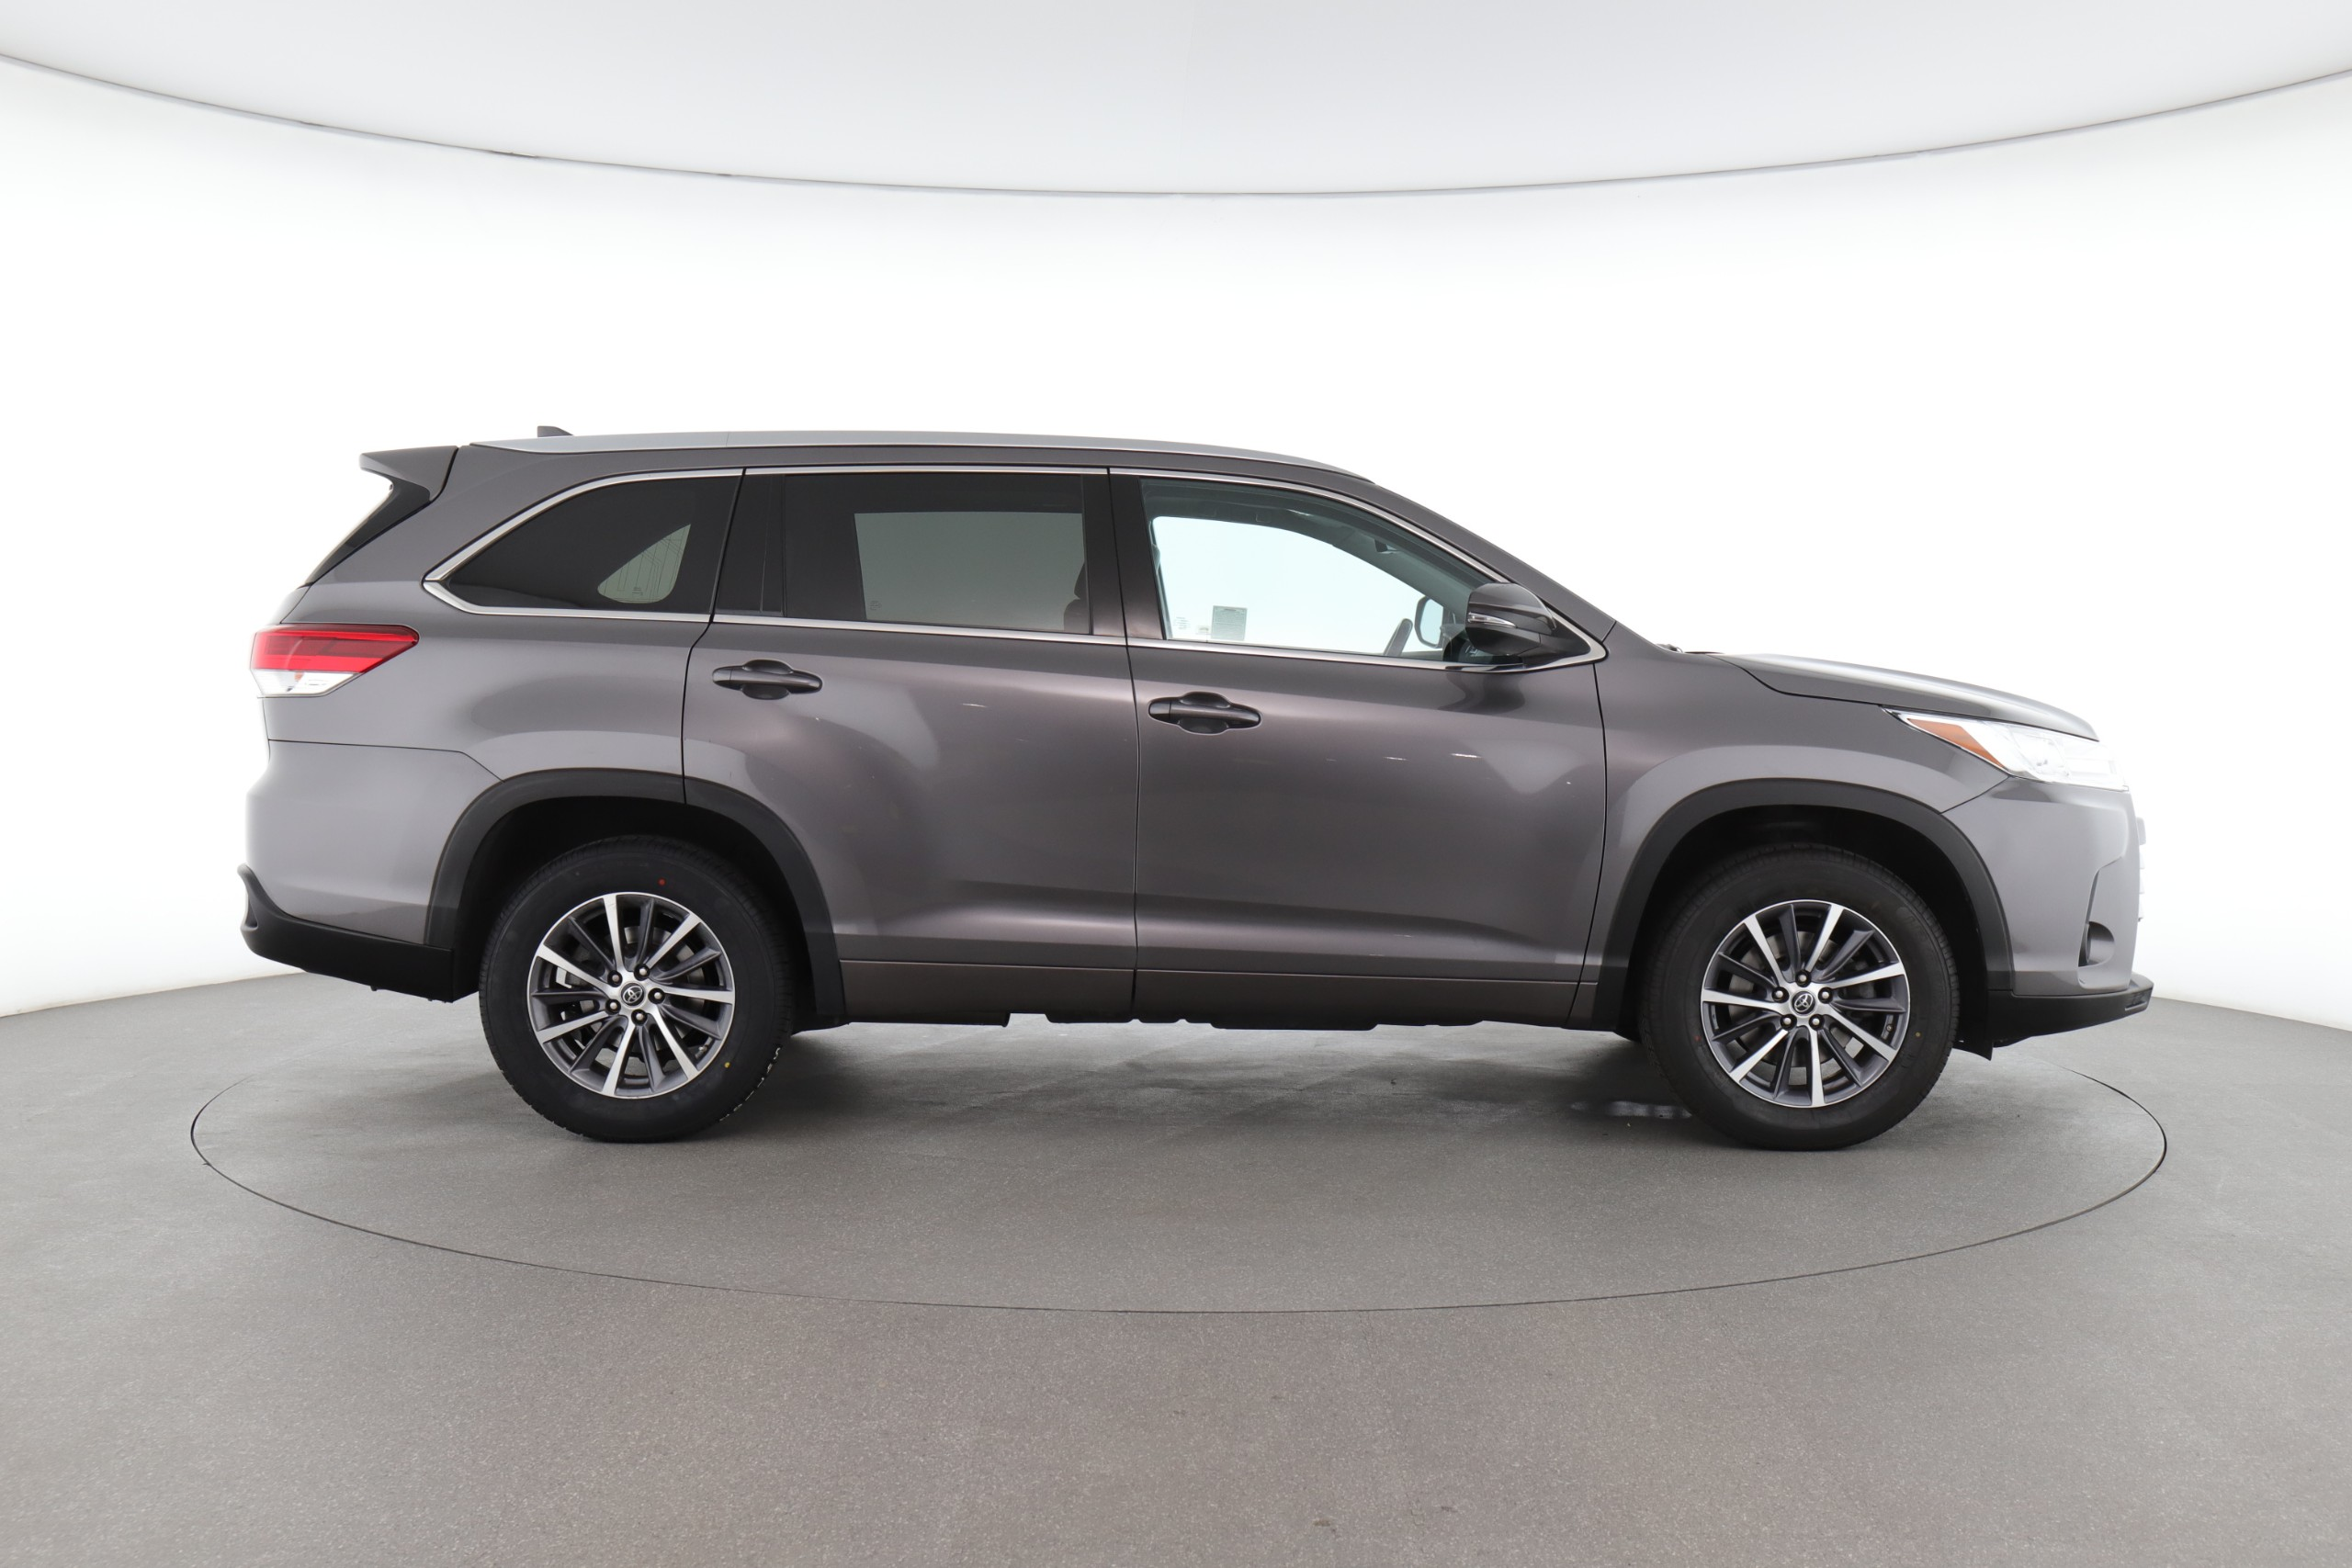 2018 Toyota Highlander XLE (from $34,400)